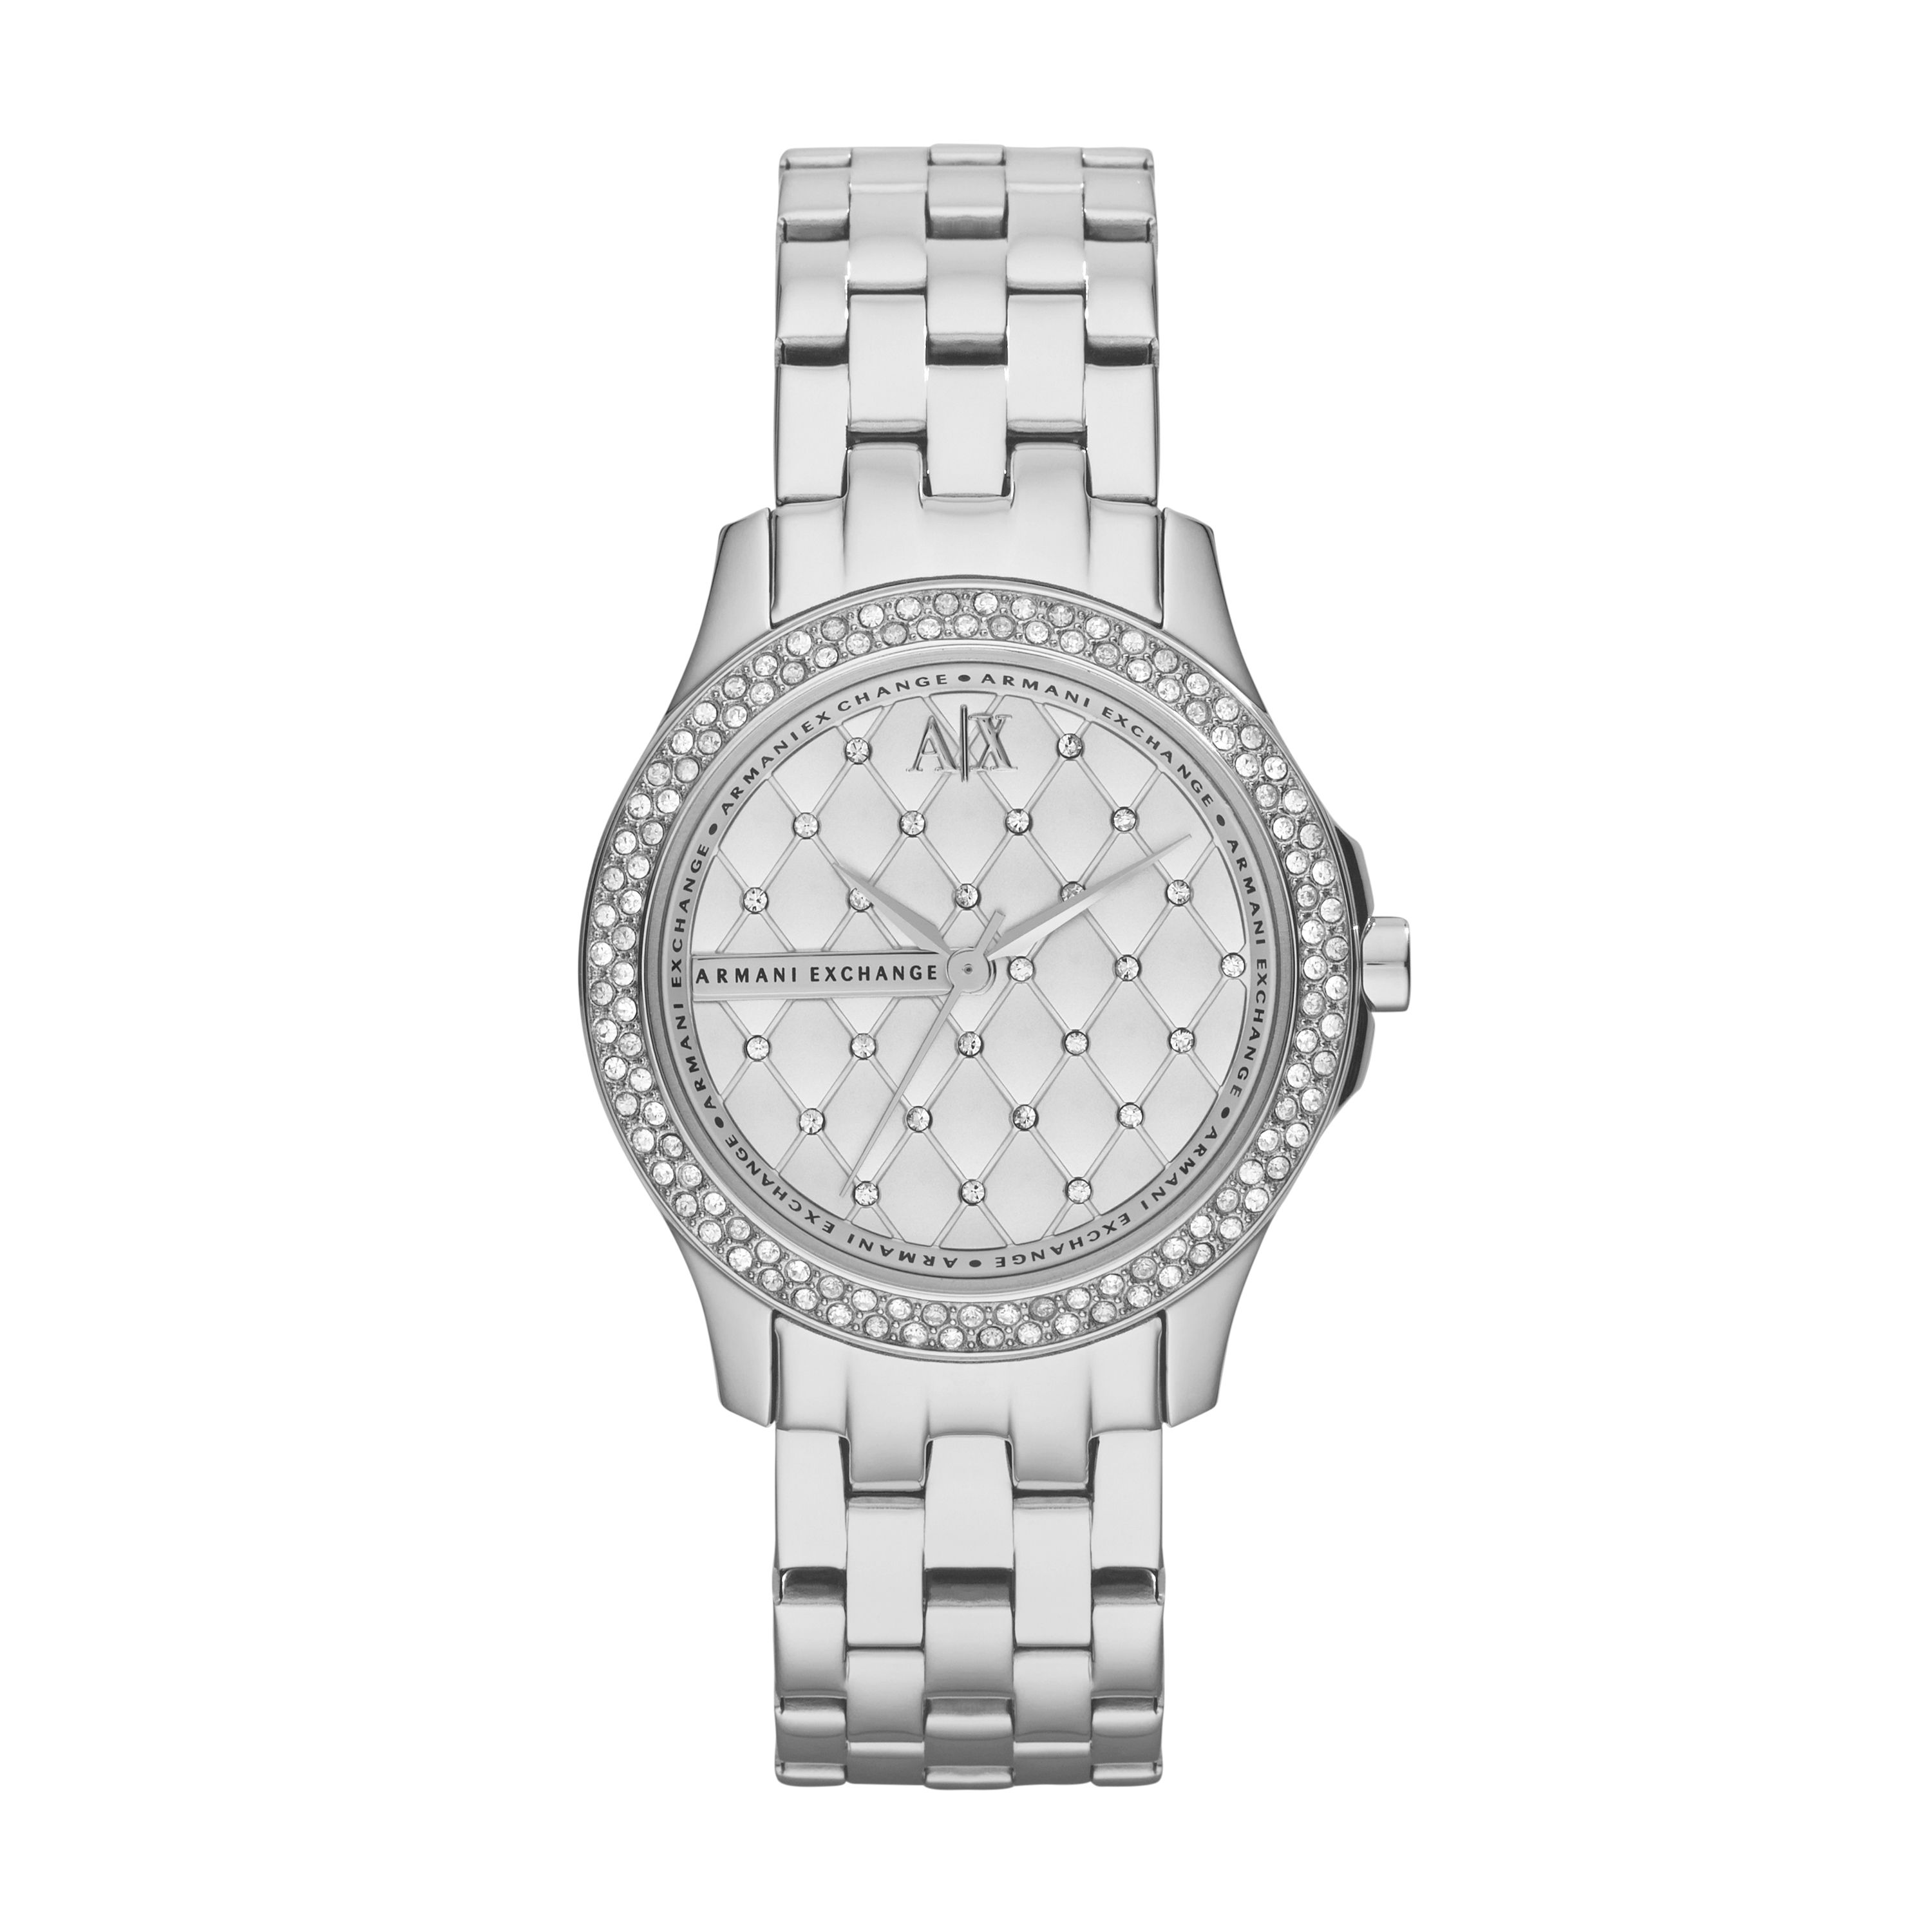 AX5215 SMART silver stainless steel ladies watch